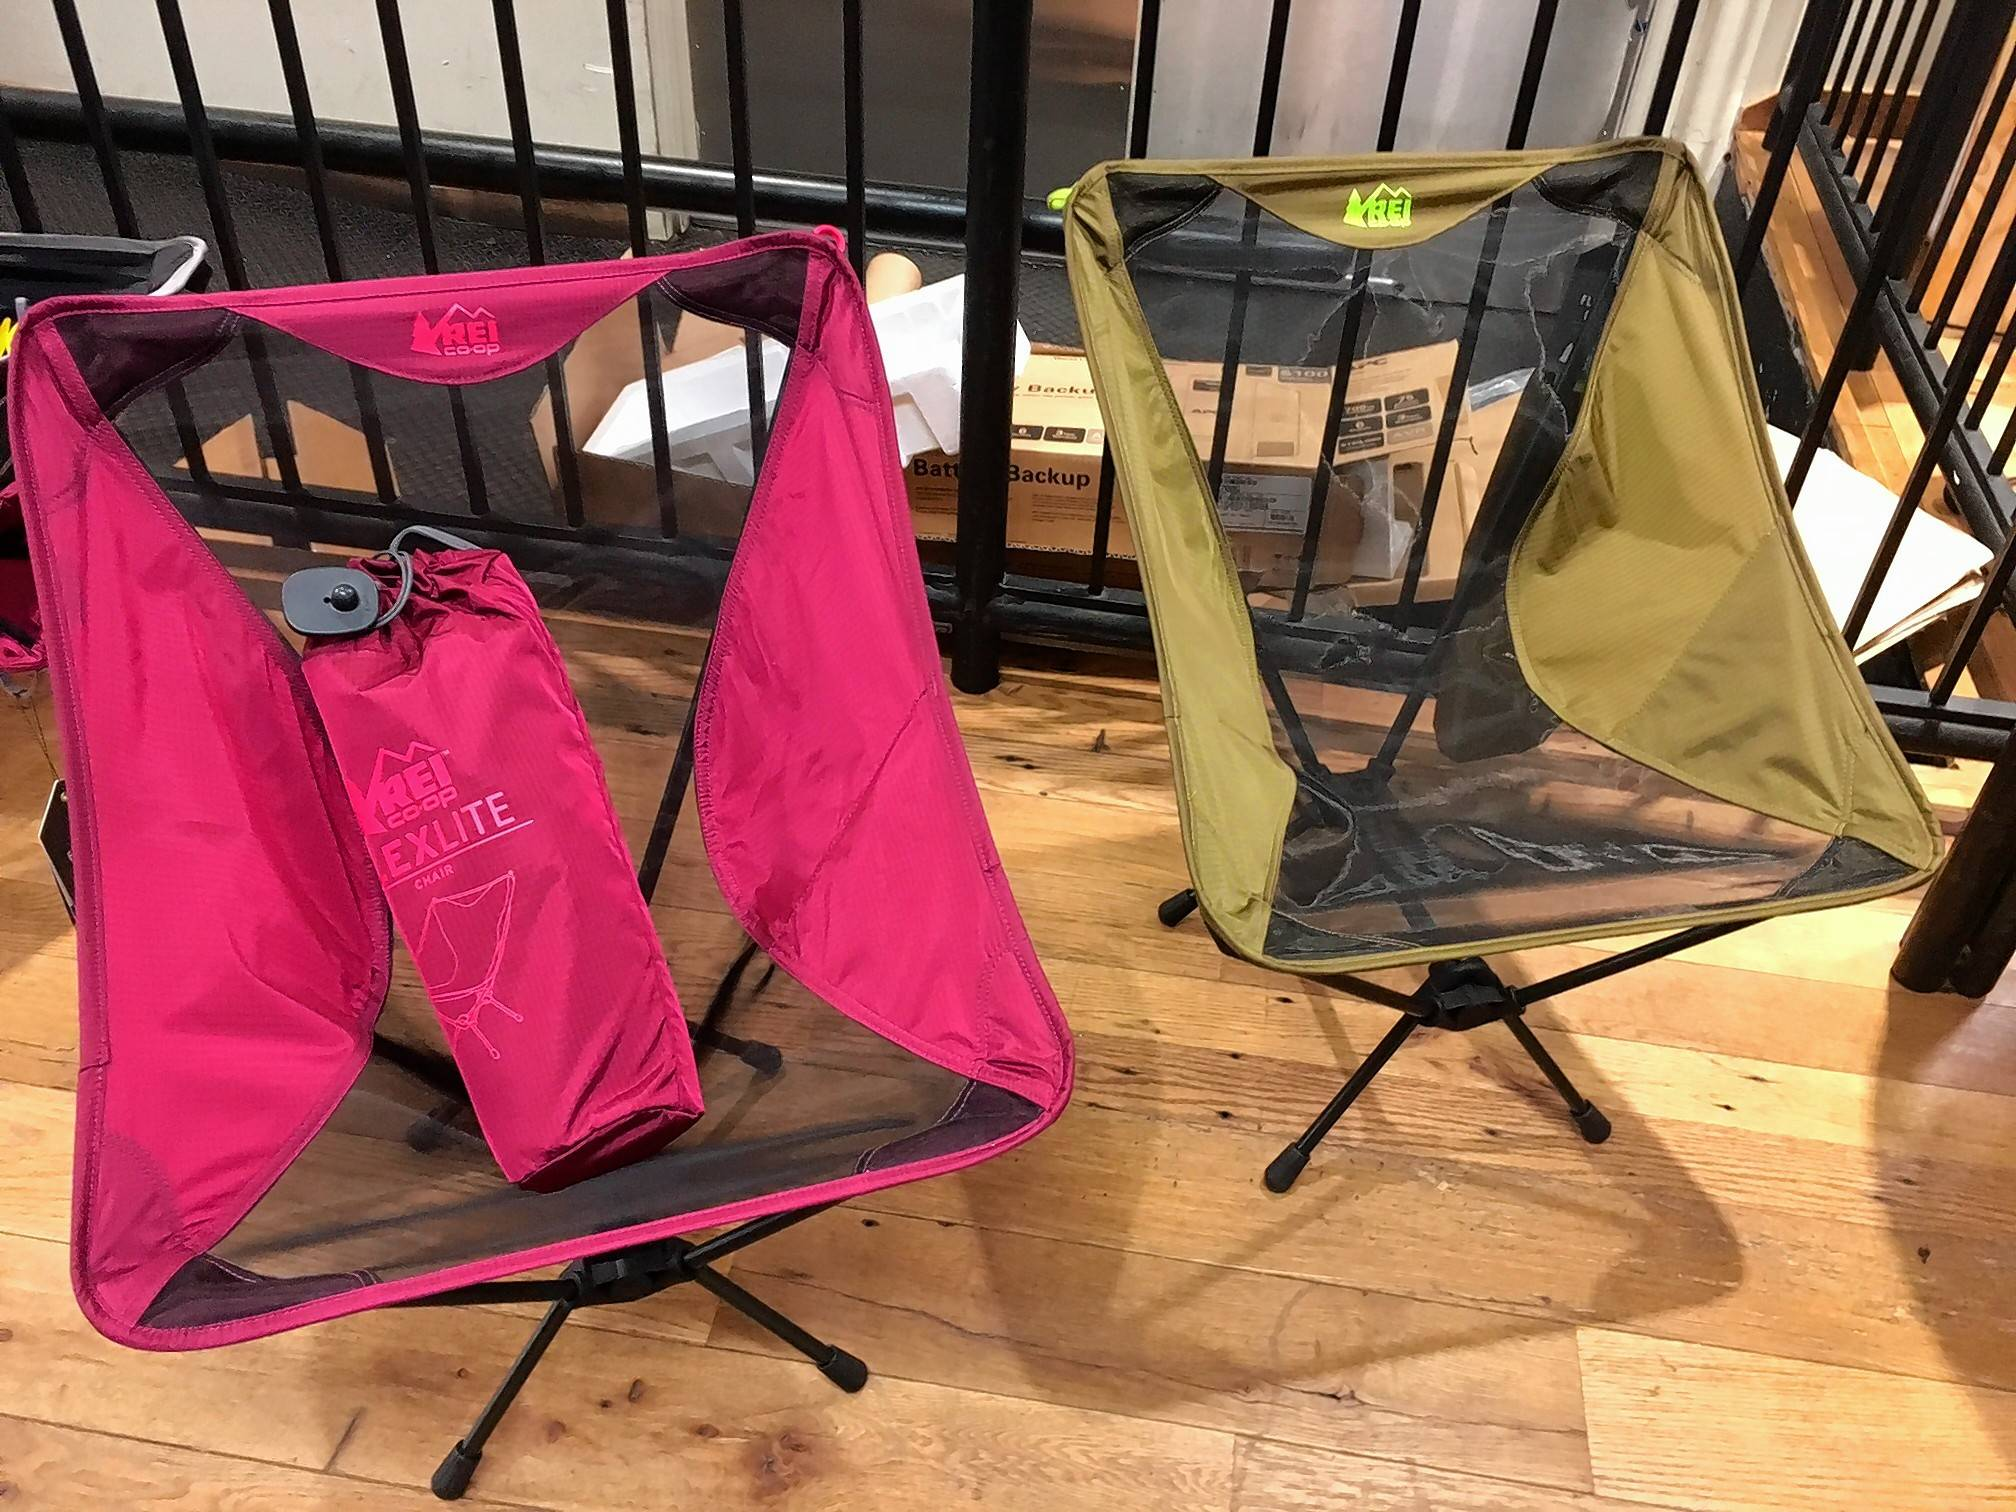 At the REI store in the Soho neighborhood of New York, two Flexlite chairs made by REI are displayed. They come in five different colors and are typical of a genre of compact folding furniture that can also be used indoors.